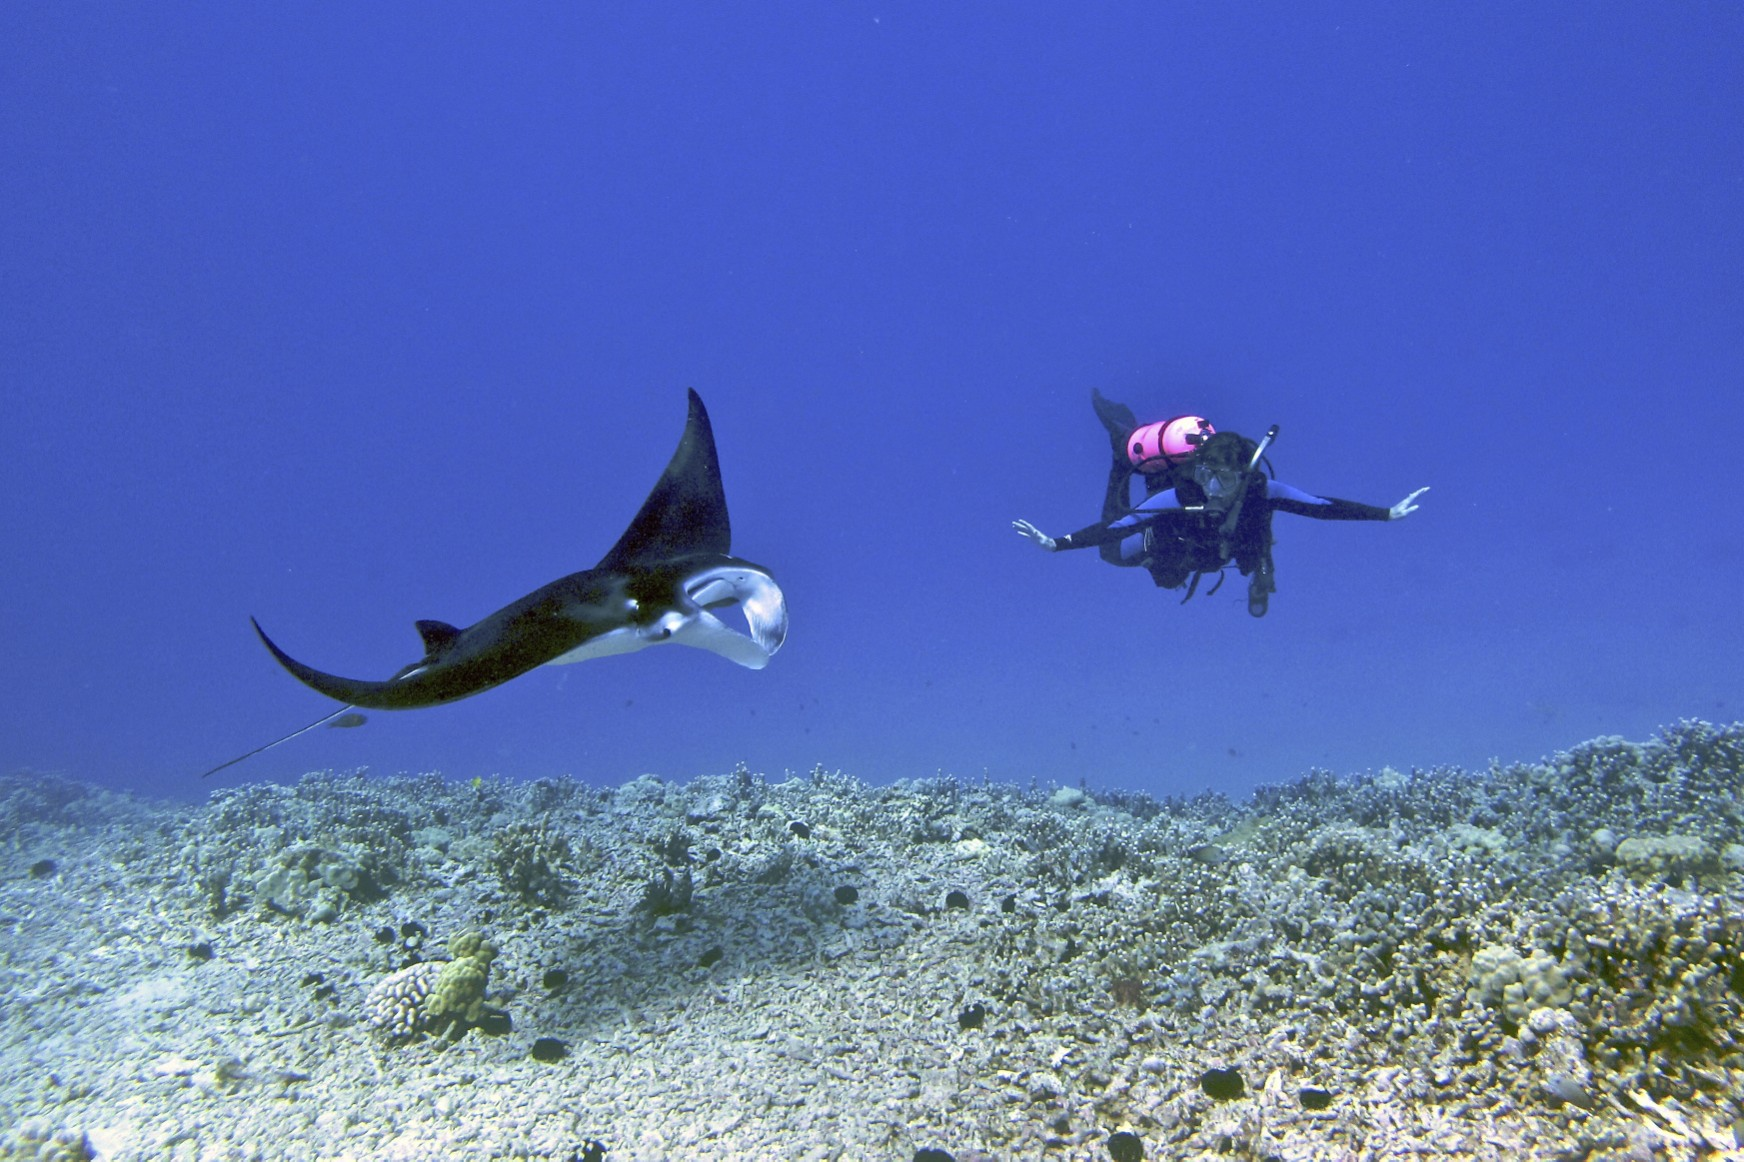 Female_scuba_diver_swims_with_a_young_male_Manta_ray_-_Kona_district,_Hawaii